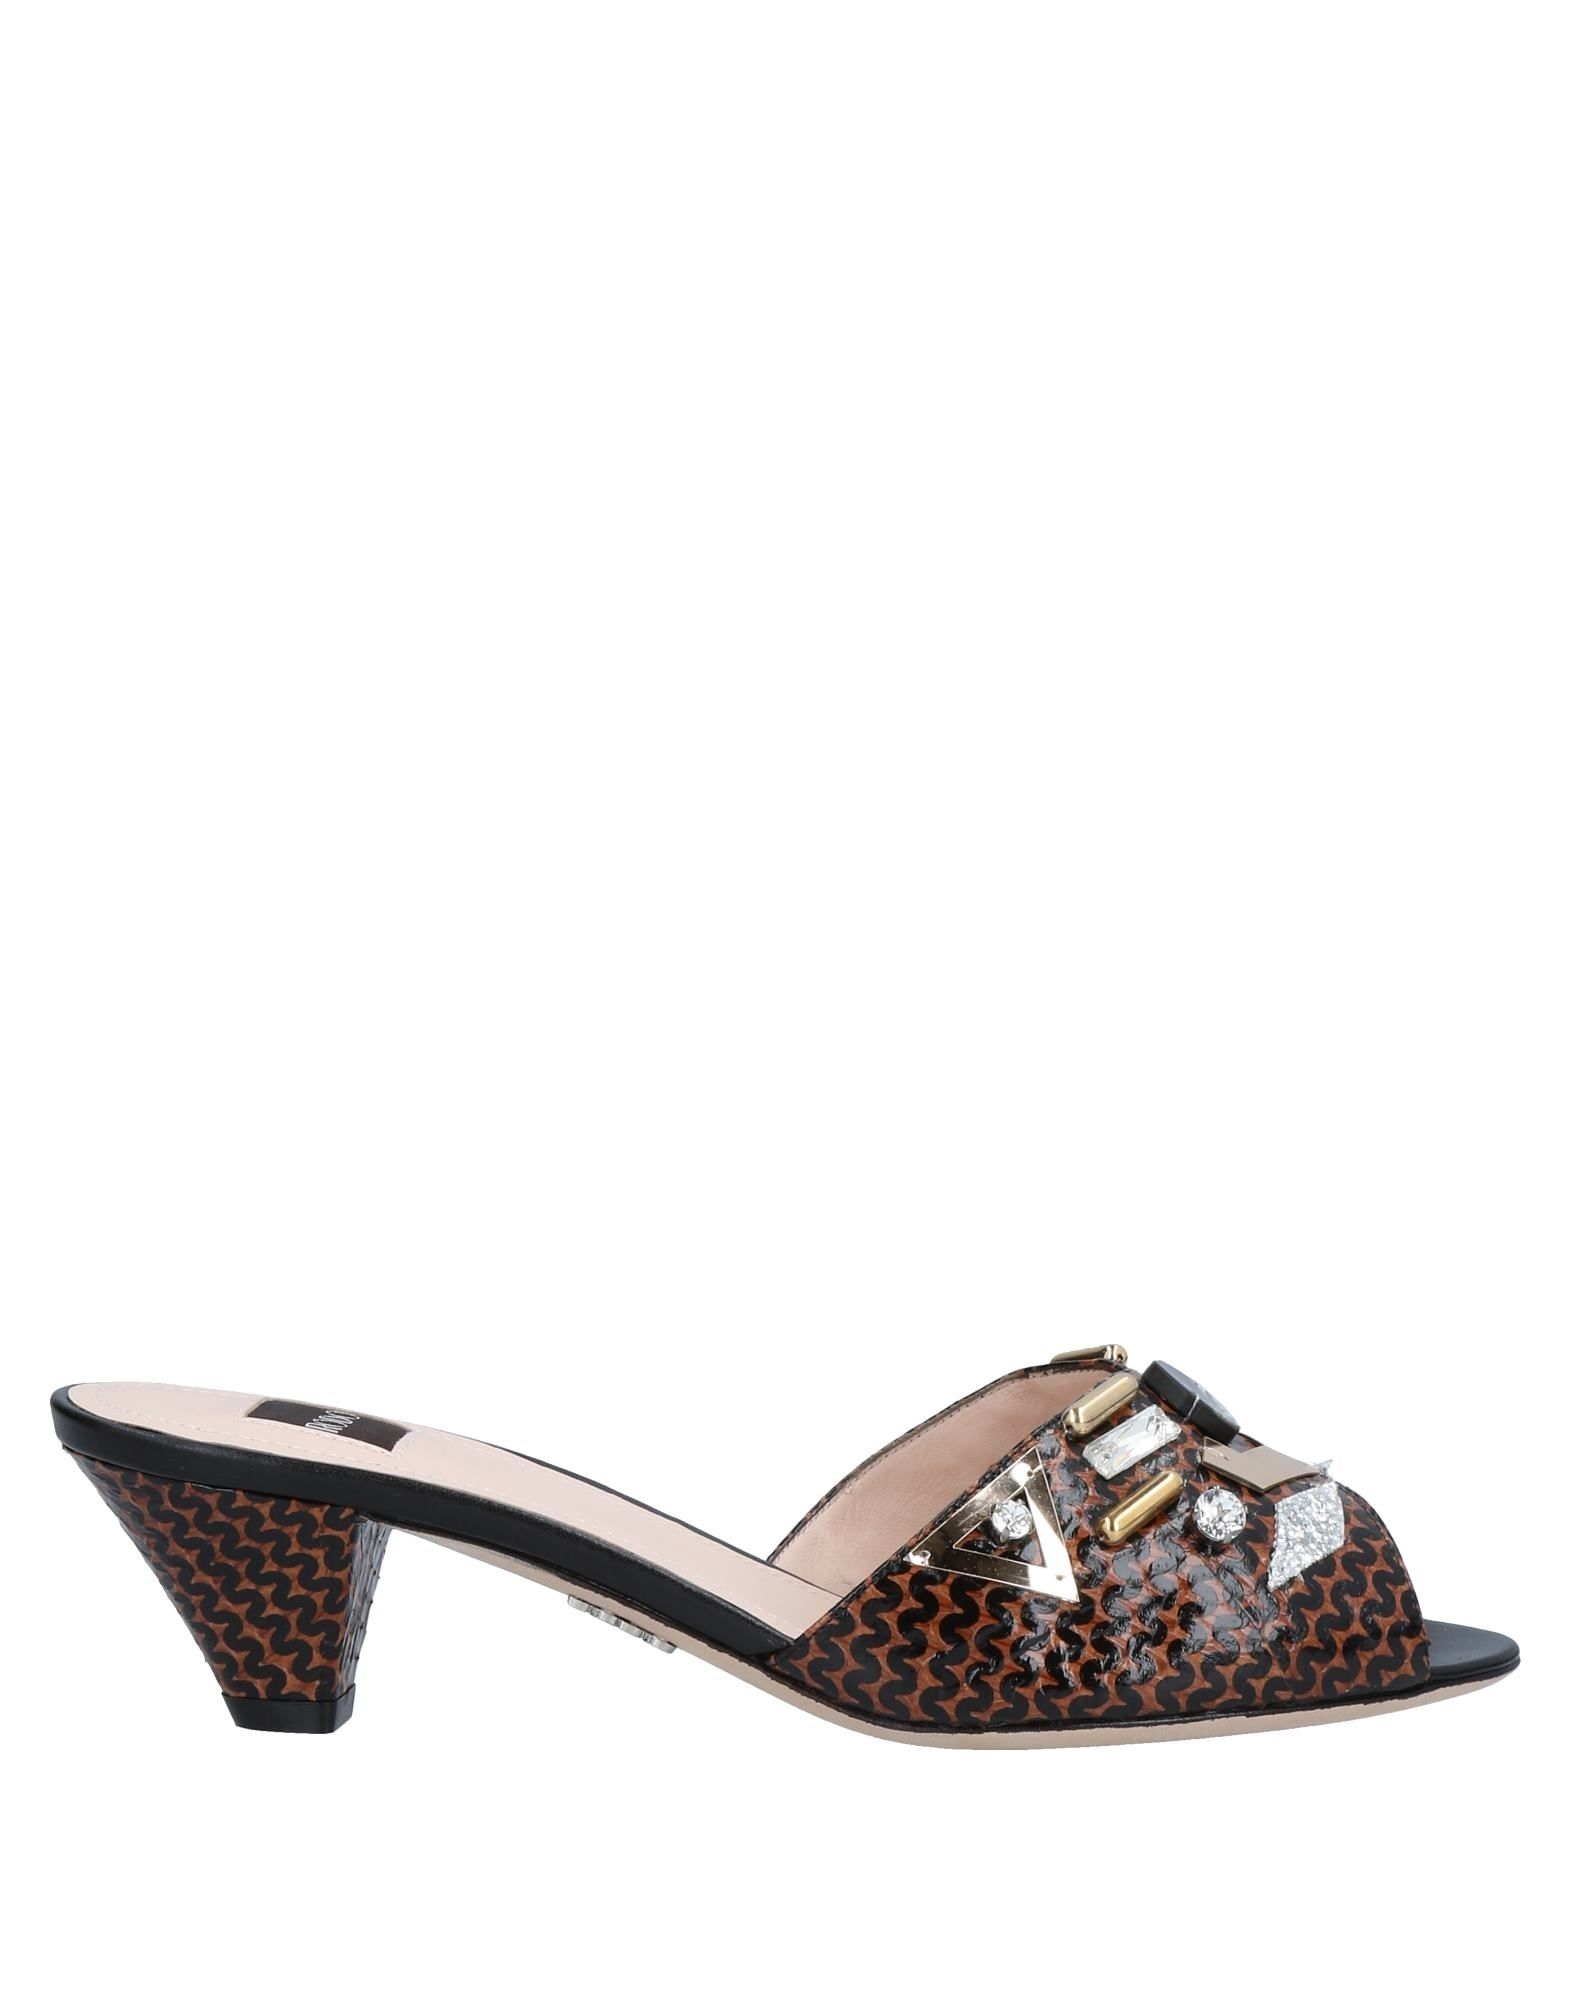 Rodo Leathers Sandals